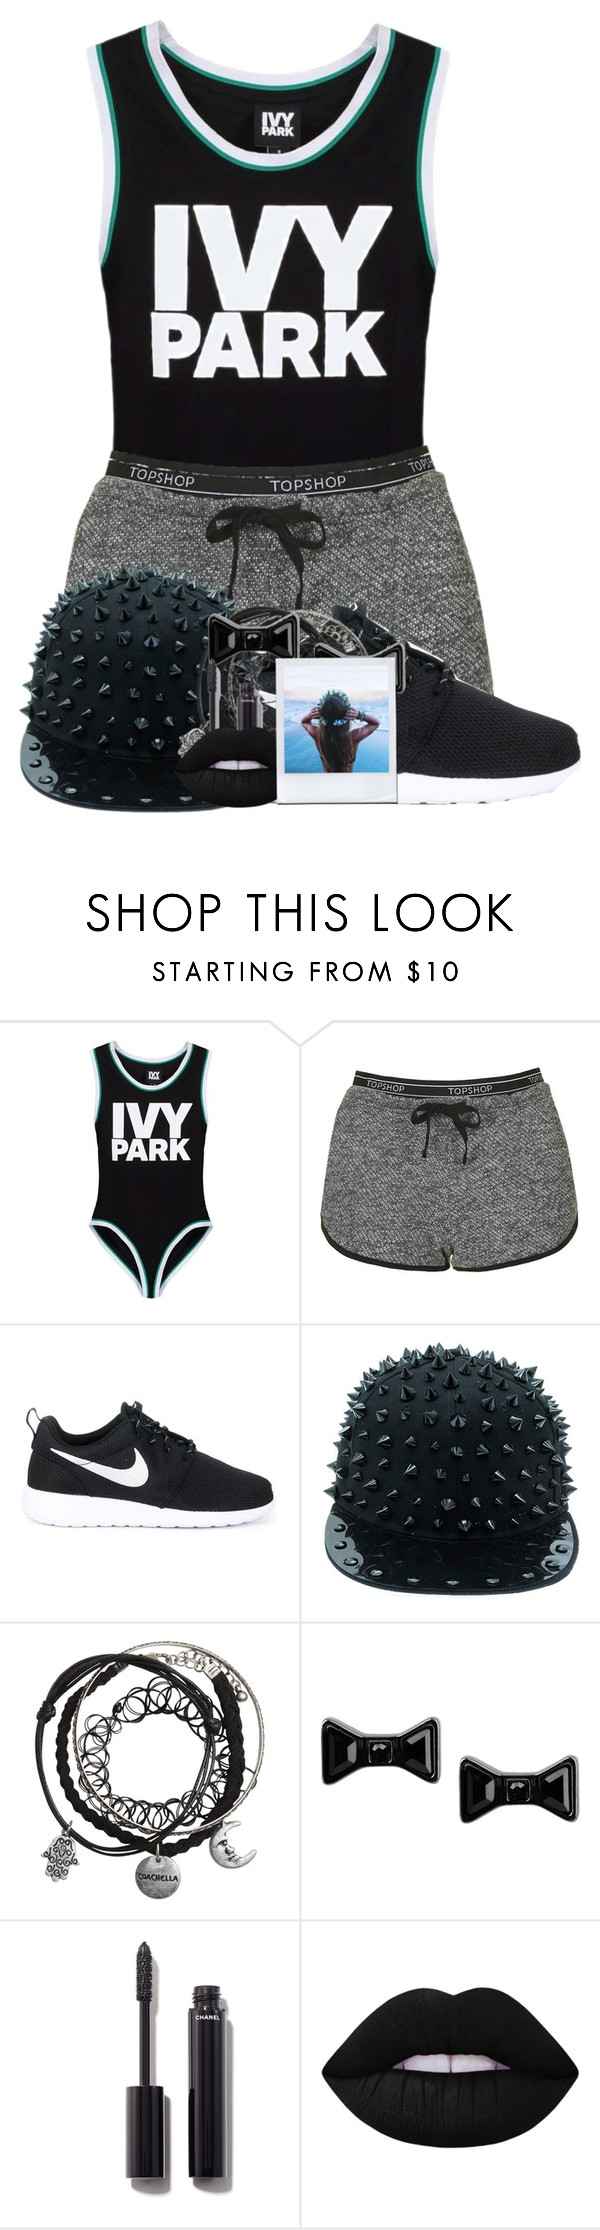 """""""Ivy Park"""" by fashionista-heart ❤ liked on Polyvore featuring Ivy Park, Topshop, NIKE, Marc by Marc Jacobs, Chanel and Lime Crime"""